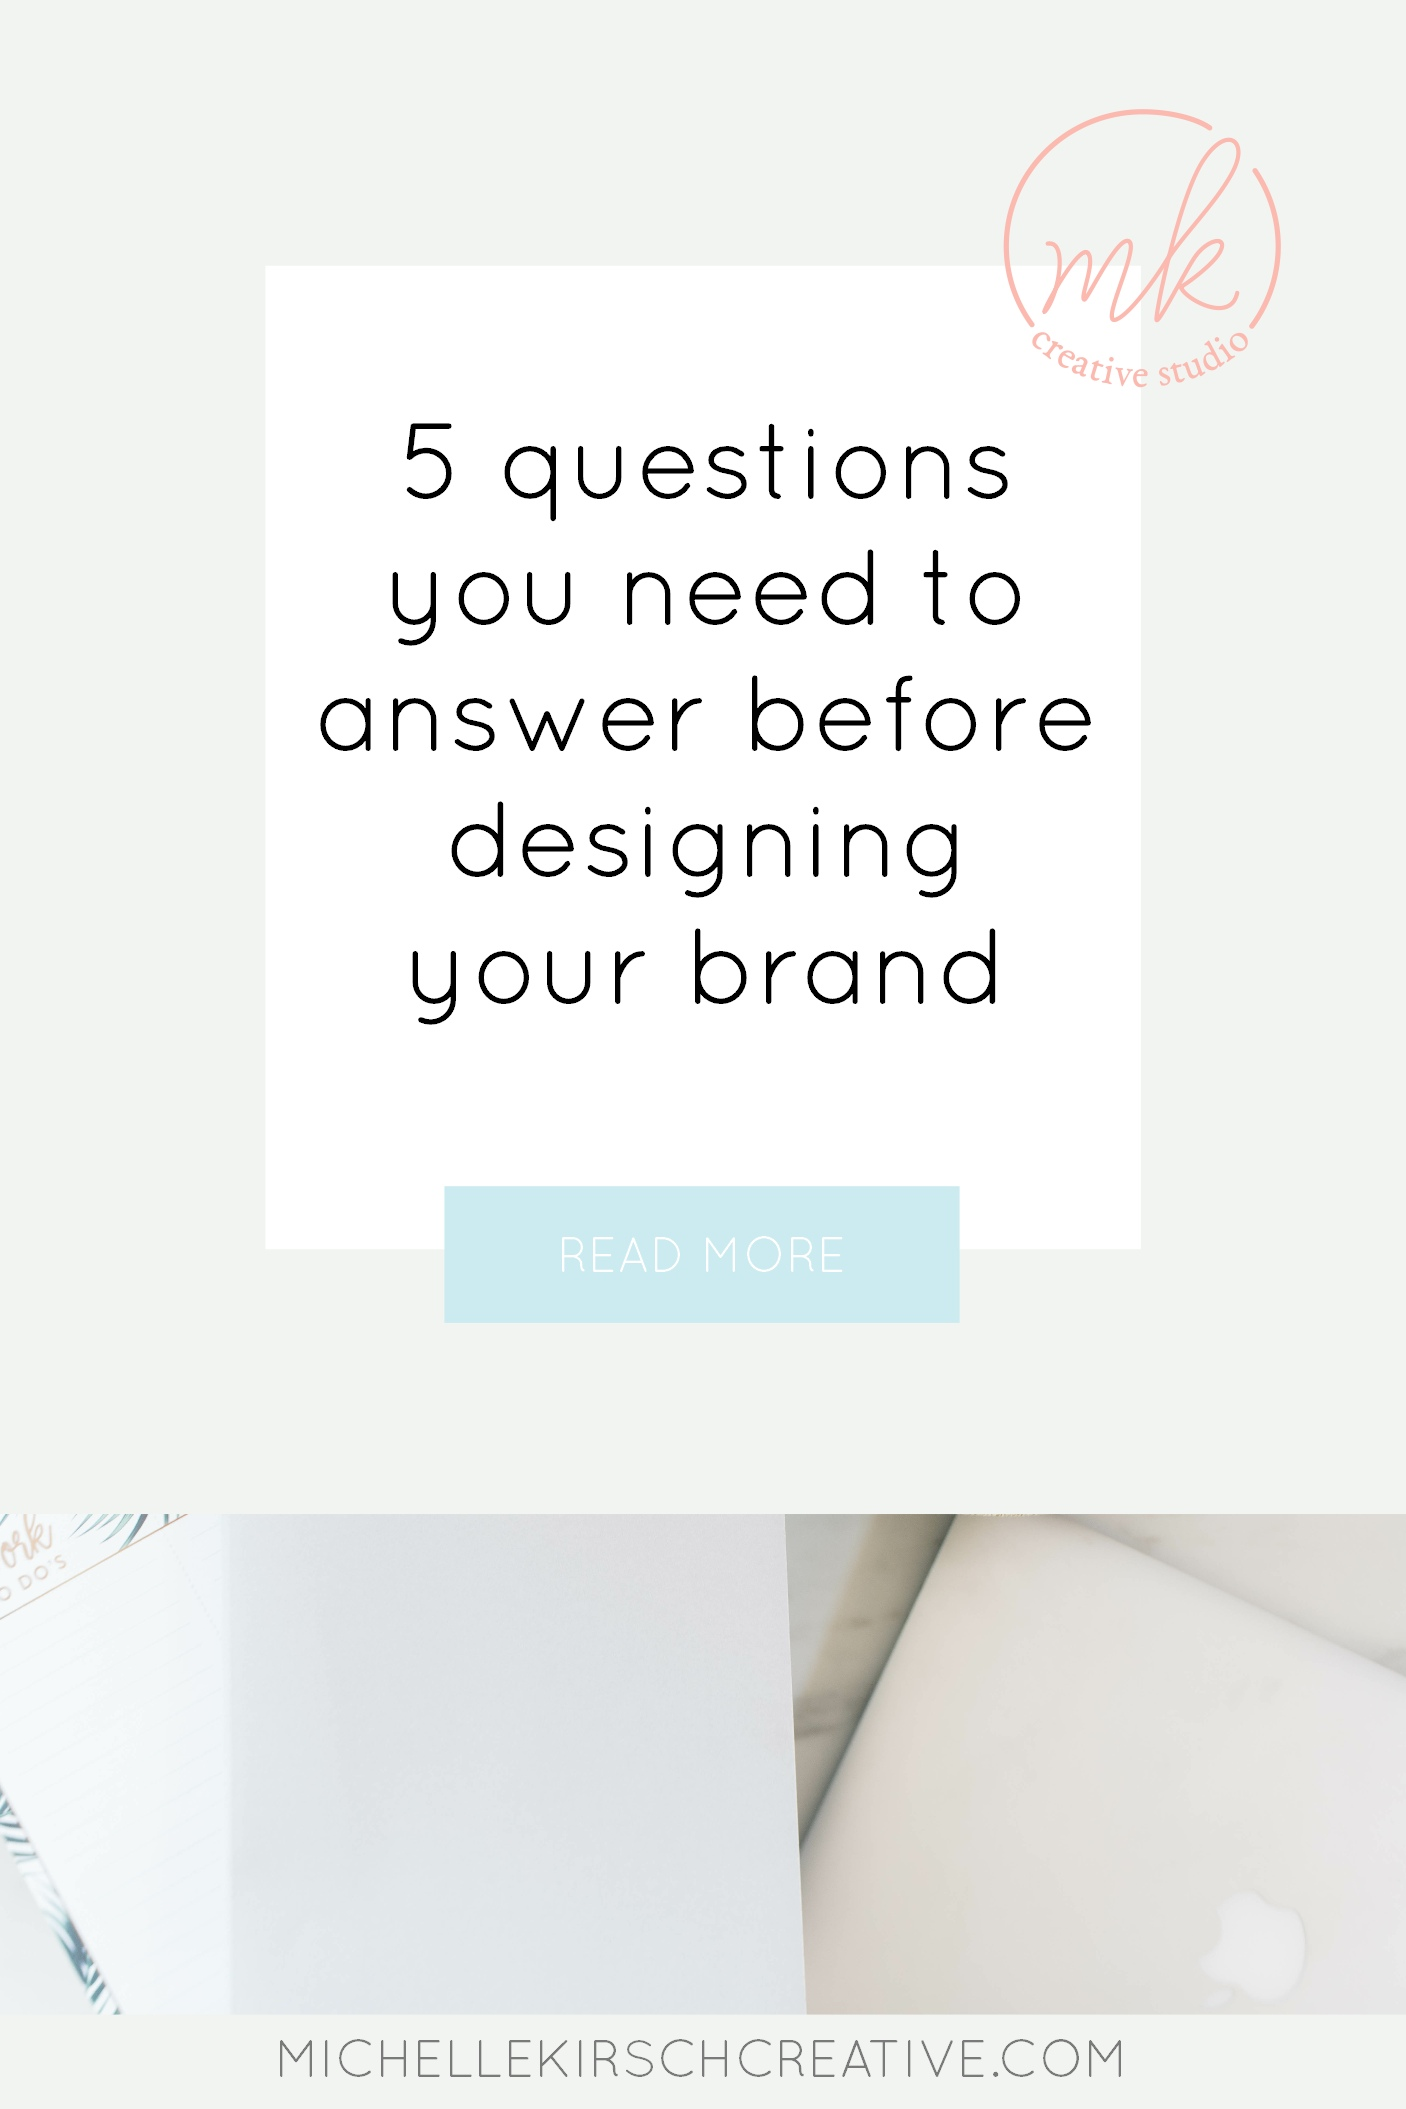 5 questions you need to answer before designing your brand